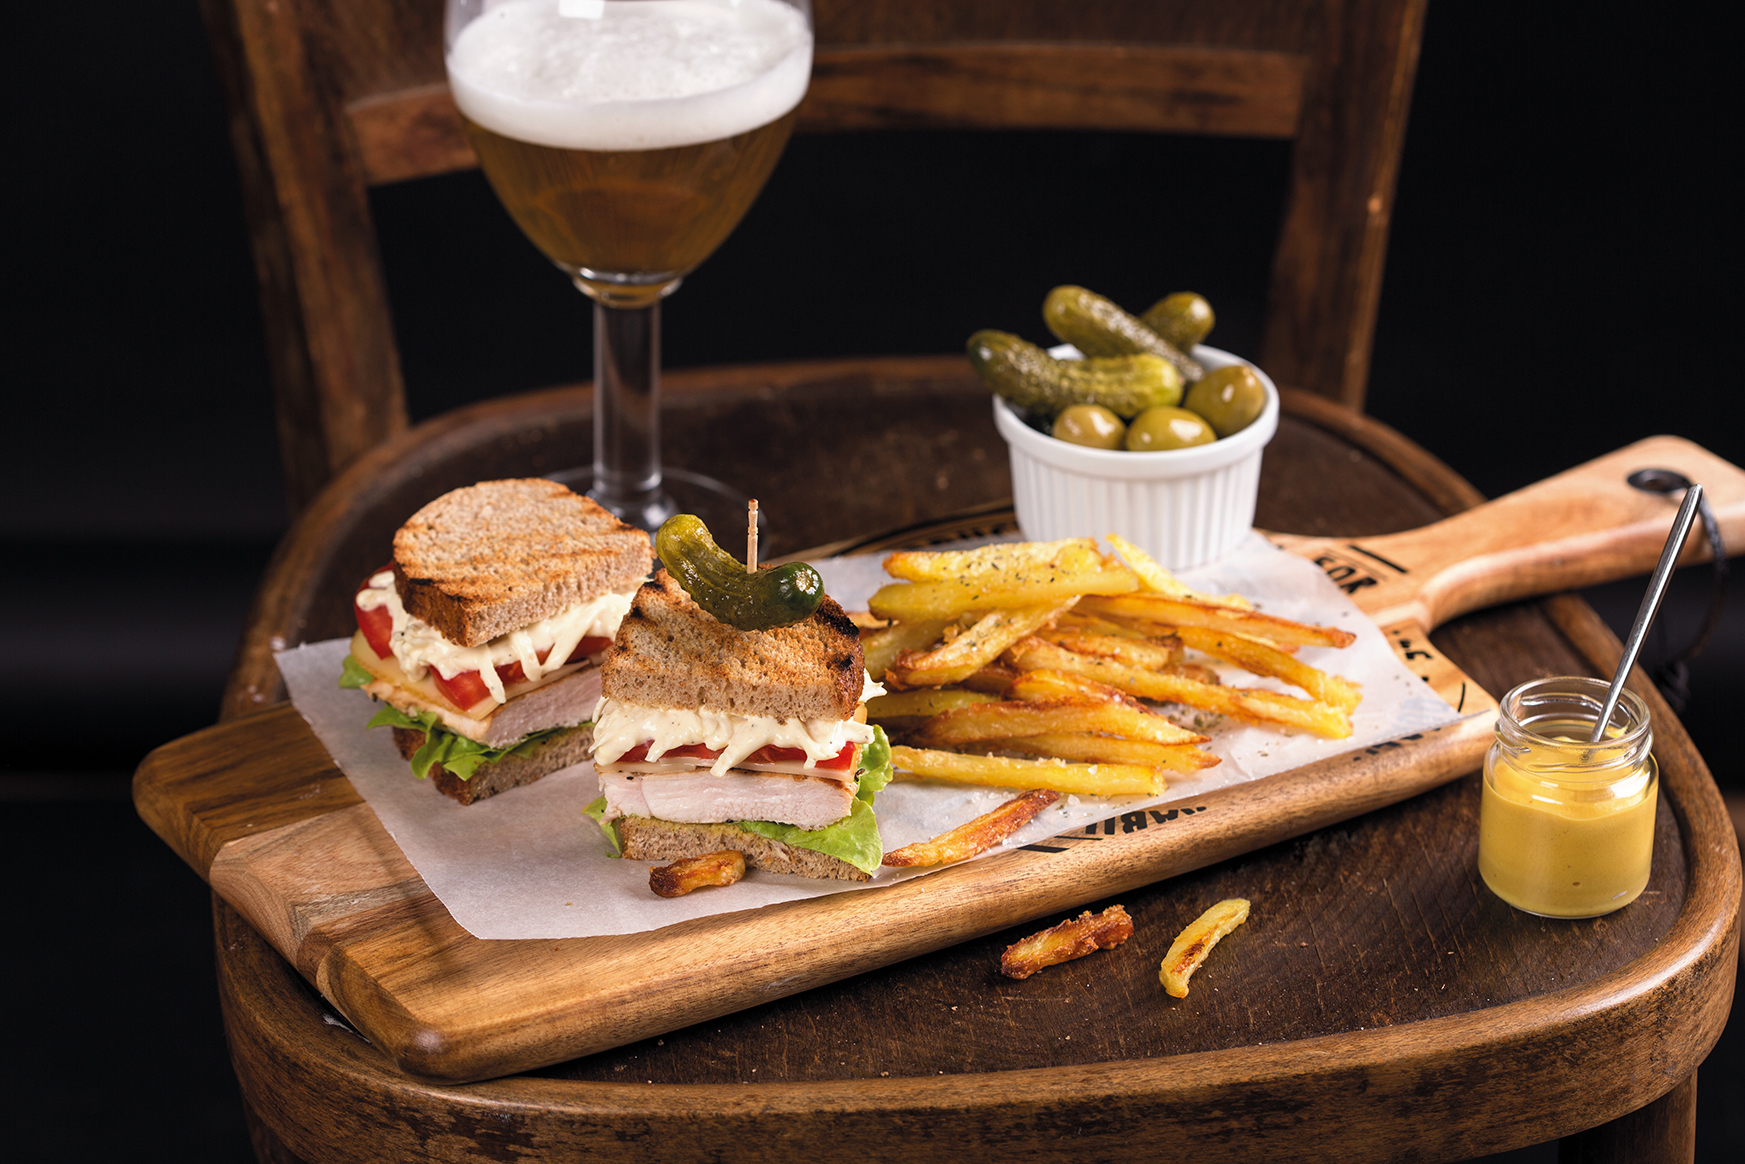 Whole-grain club sandwich with Parmigiano fries